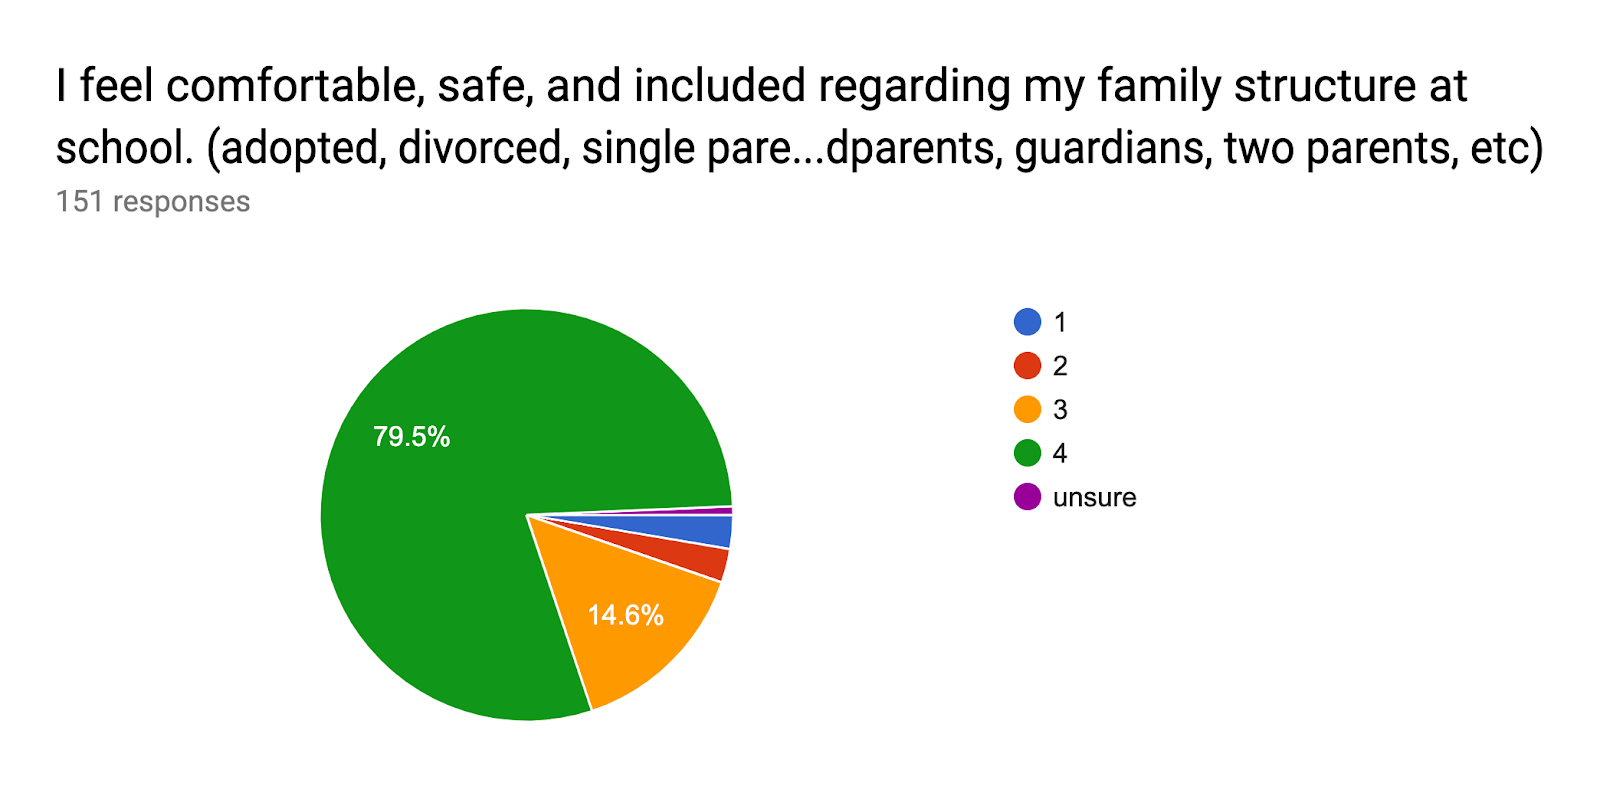 Forms response chart. Question title: I feel comfortable, safe, and included regarding my family structure at school. (adopted, divorced, single parent, gay parents, grandparents, guardians, two parents, etc). Number of responses: 151 responses.